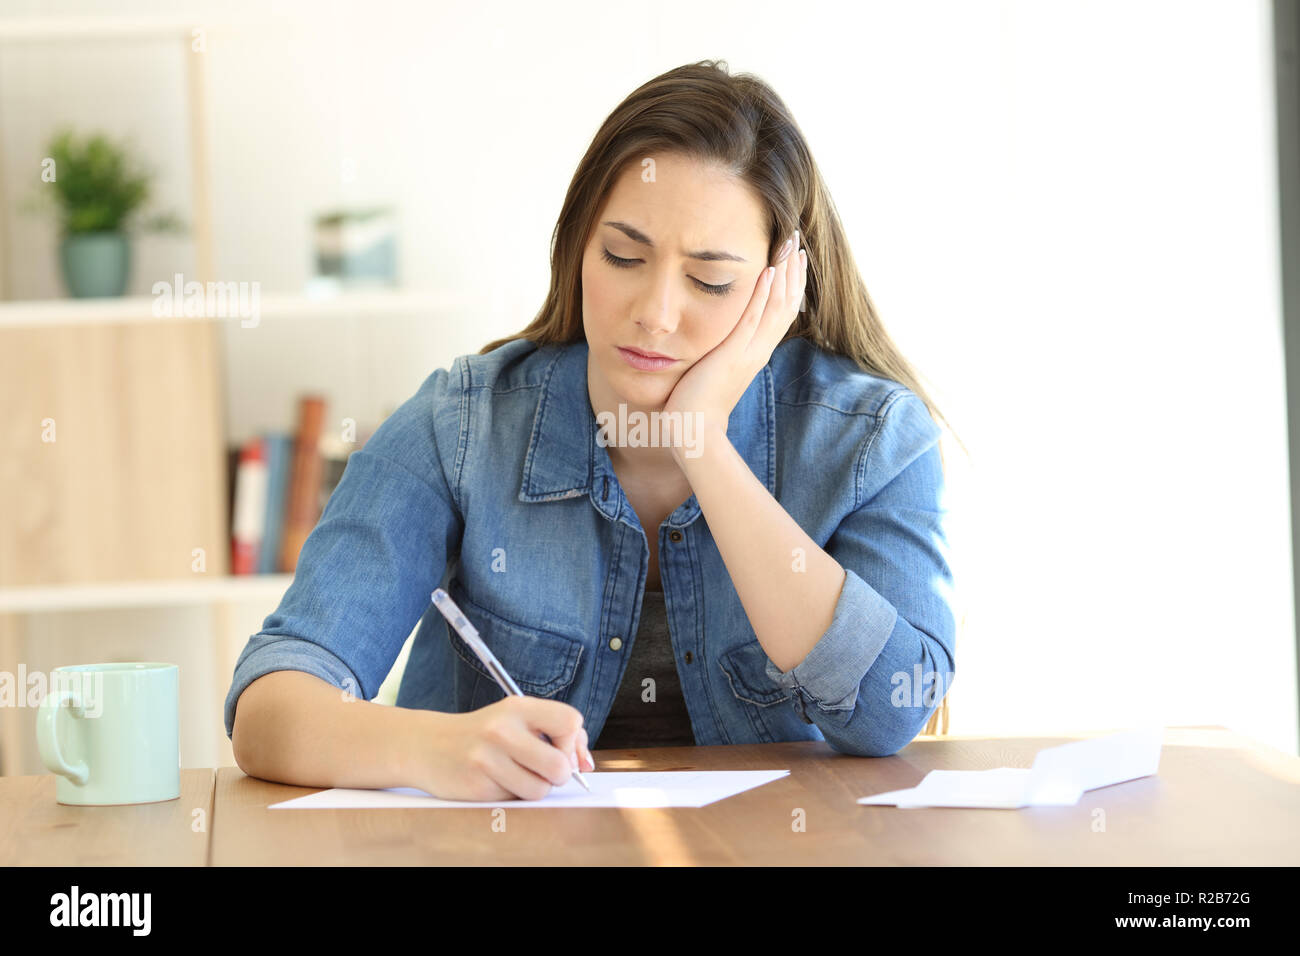 Front view of a worried woman writing notes or a letter at home - Stock Image